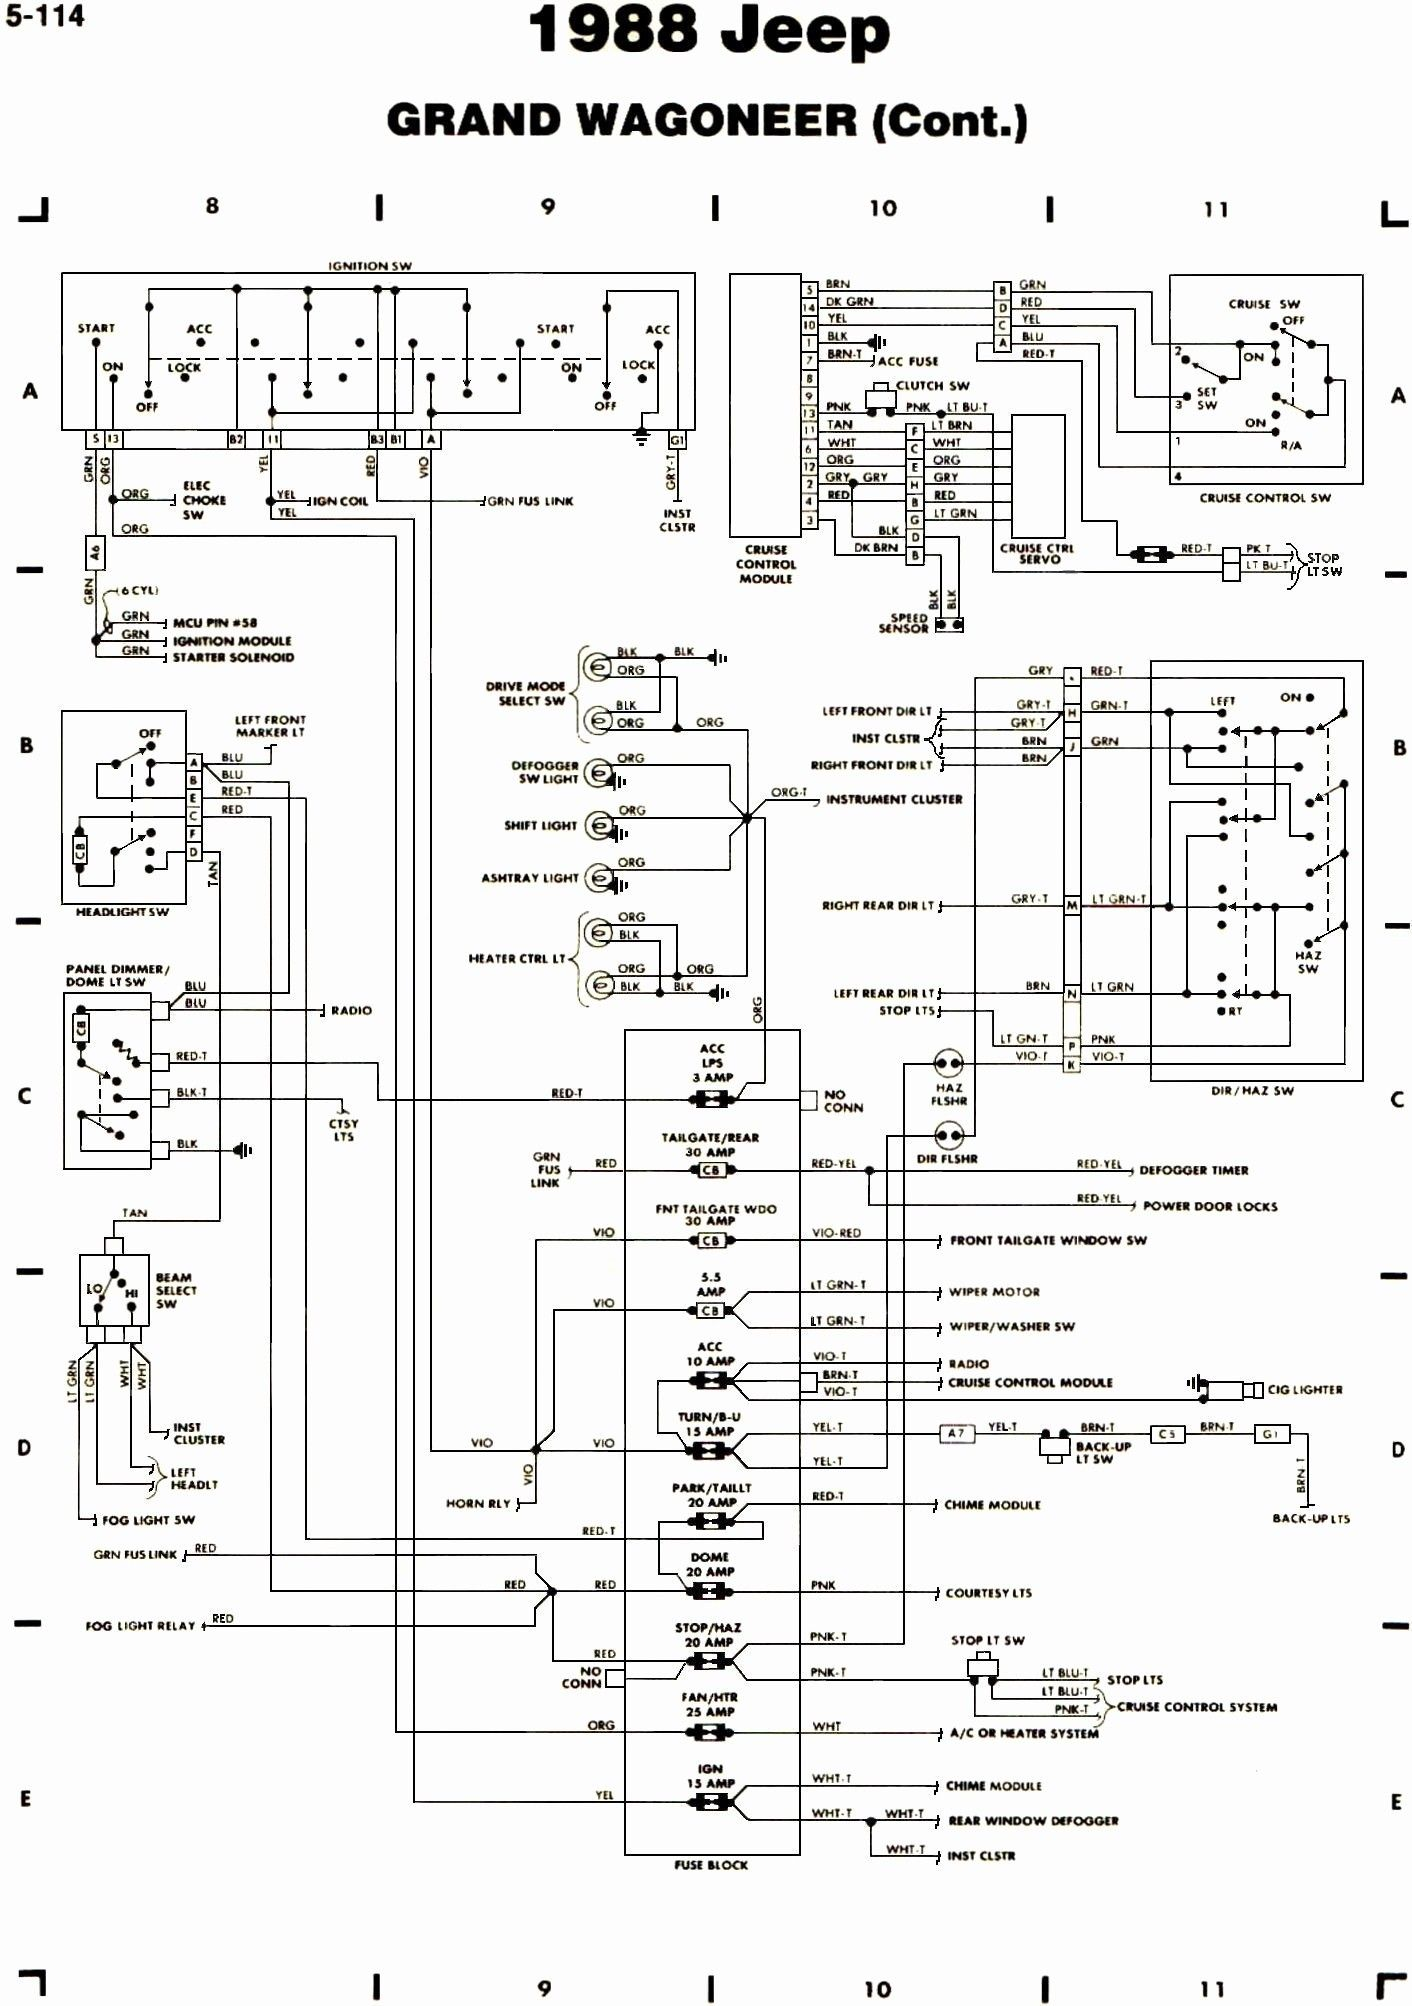 Freightliner Chassis Wiring Diagram Elegant In 2020 Freightliner Complex Techniques